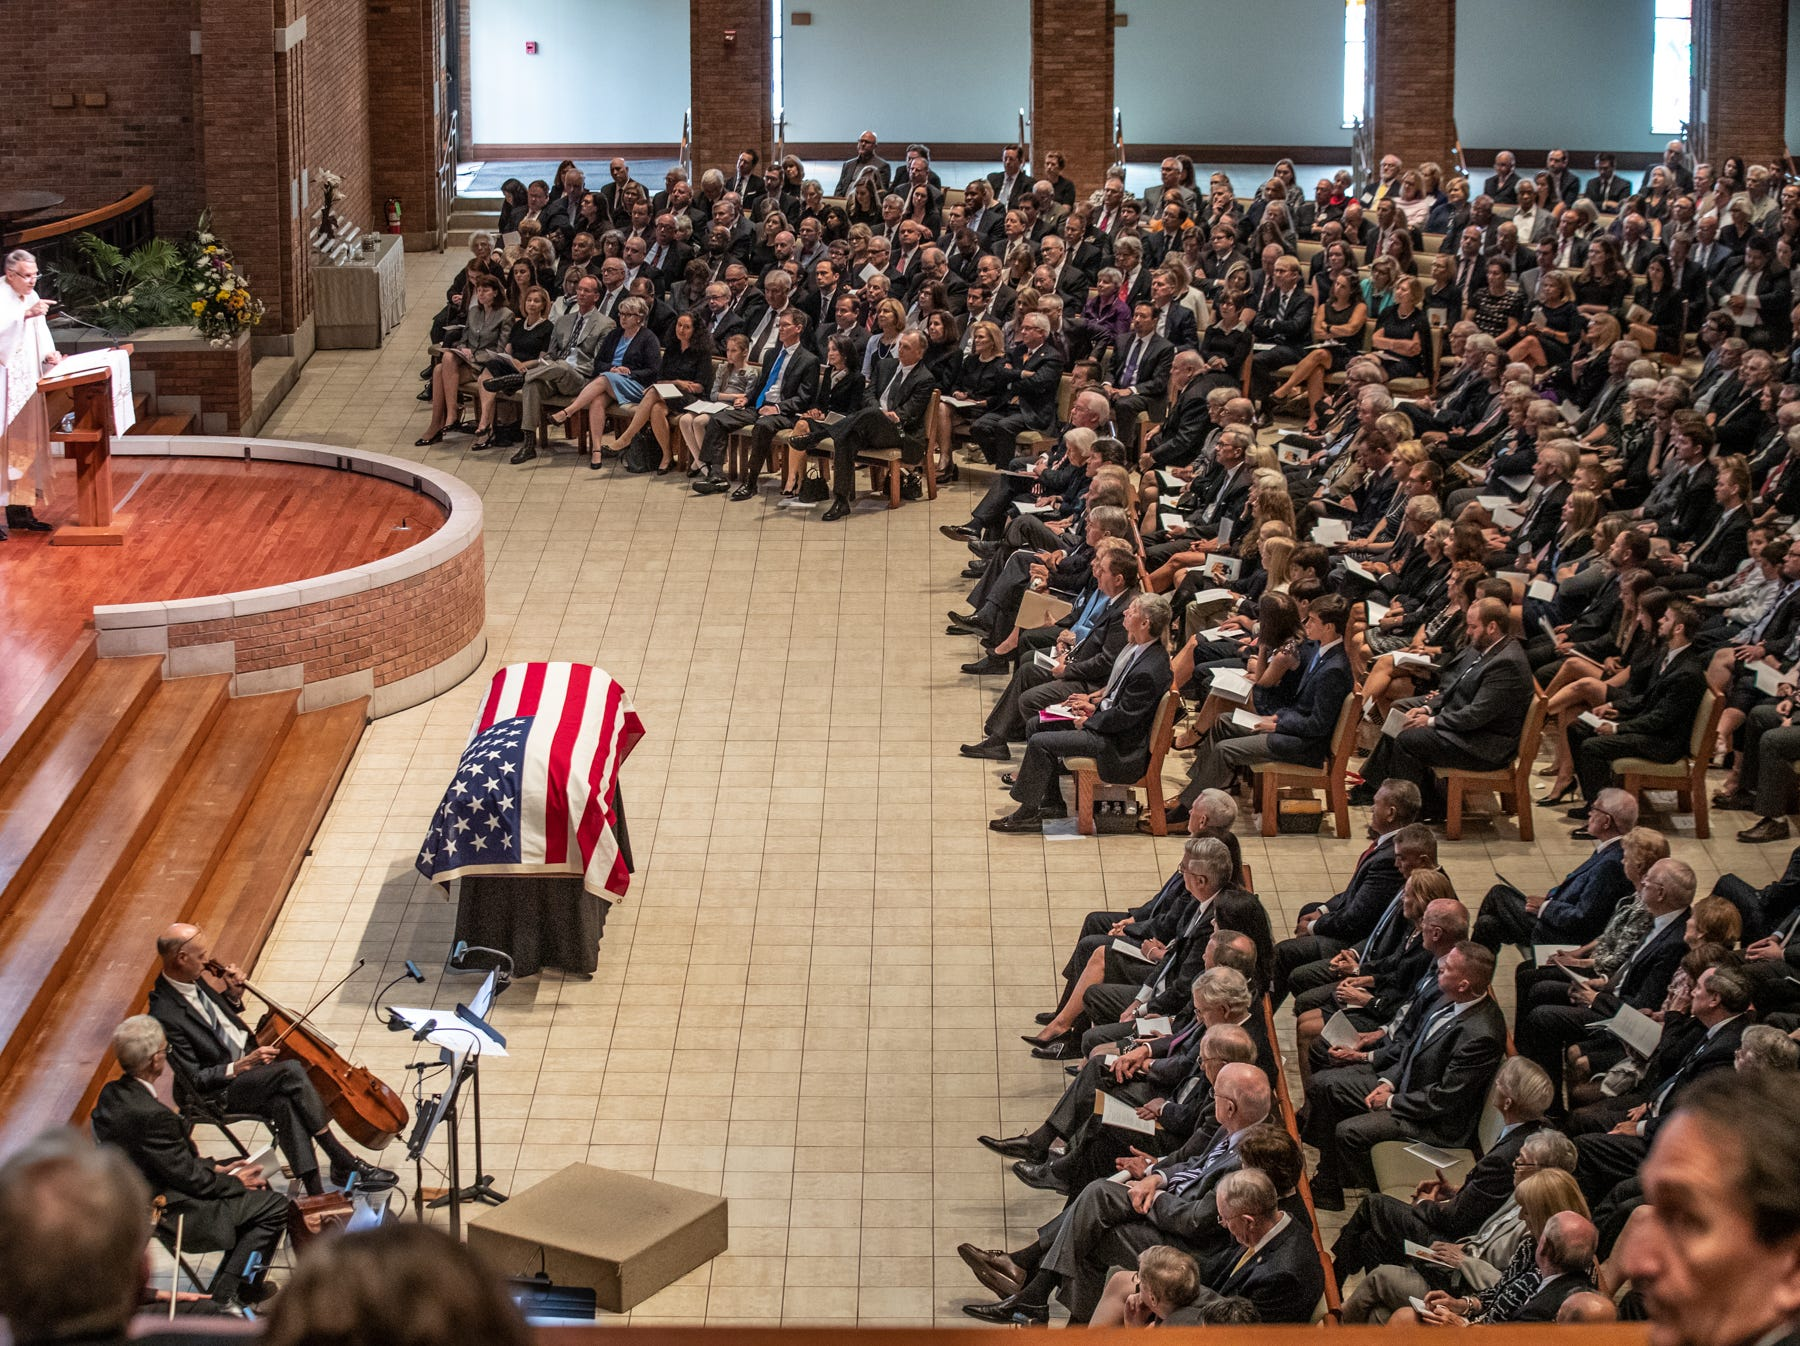 Dr. Robert E. Fuquay gives the benediction during a memorial service for former Indiana Senator, Richard Lugar, held at Saint Luke's United Methodist Church in Indianapolis, on Wednesday, May 15, 2019. Lugar served as mayor of Indianapolis from 1968 to 1975 and U.S. senator from 1977 to 2013. He died April 28, 2019, at the age of 87.